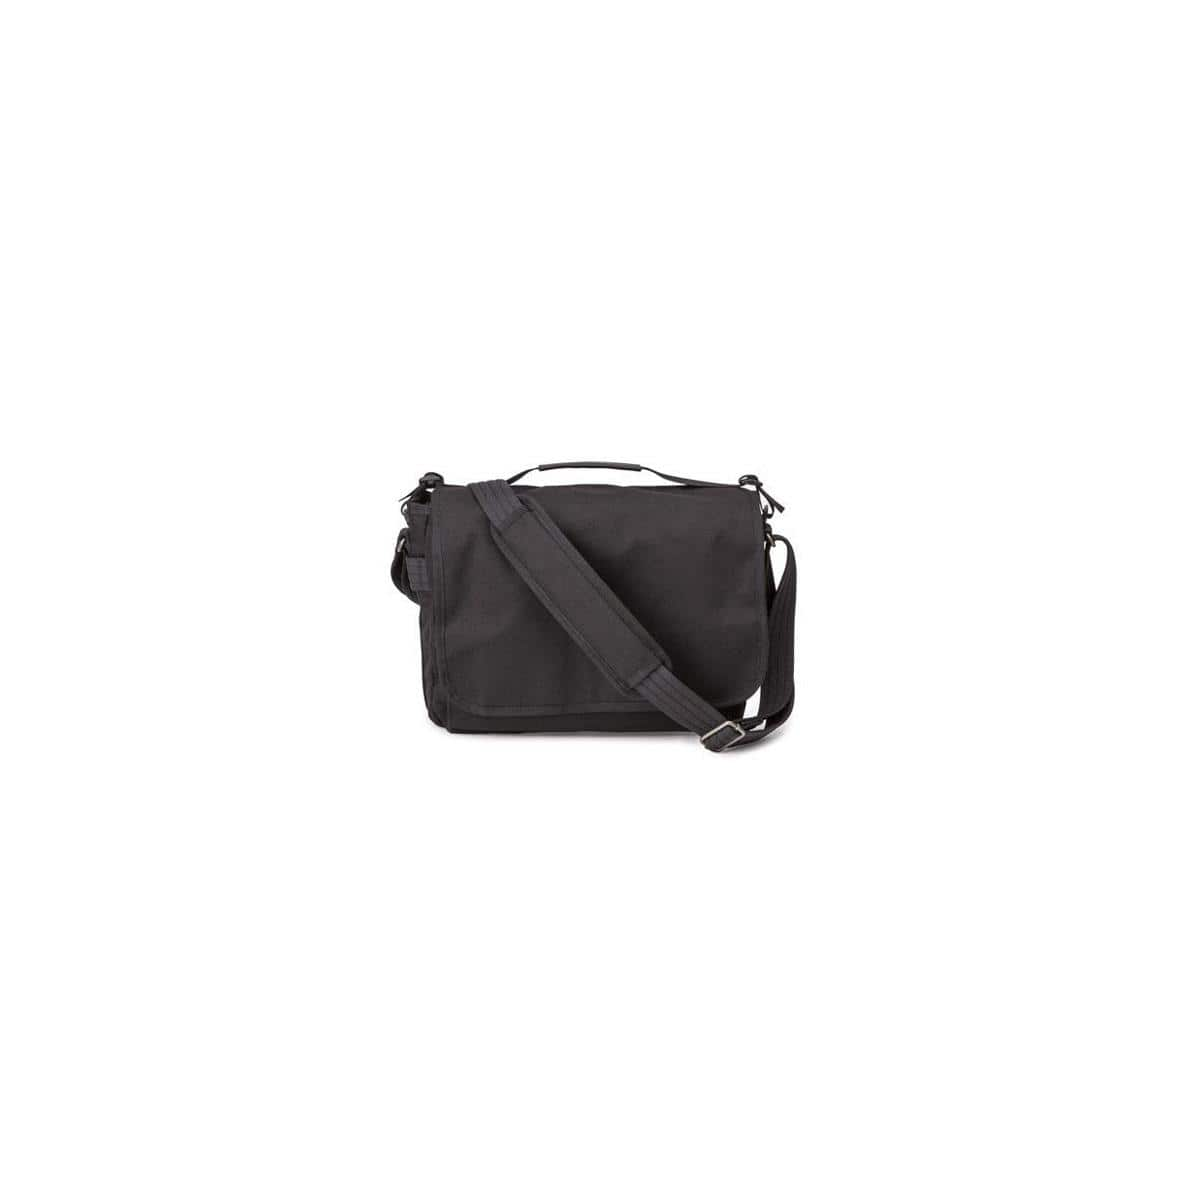 "Think Tank Retrospective Laptop Case for 13"" Laptops $30 + free shipping"